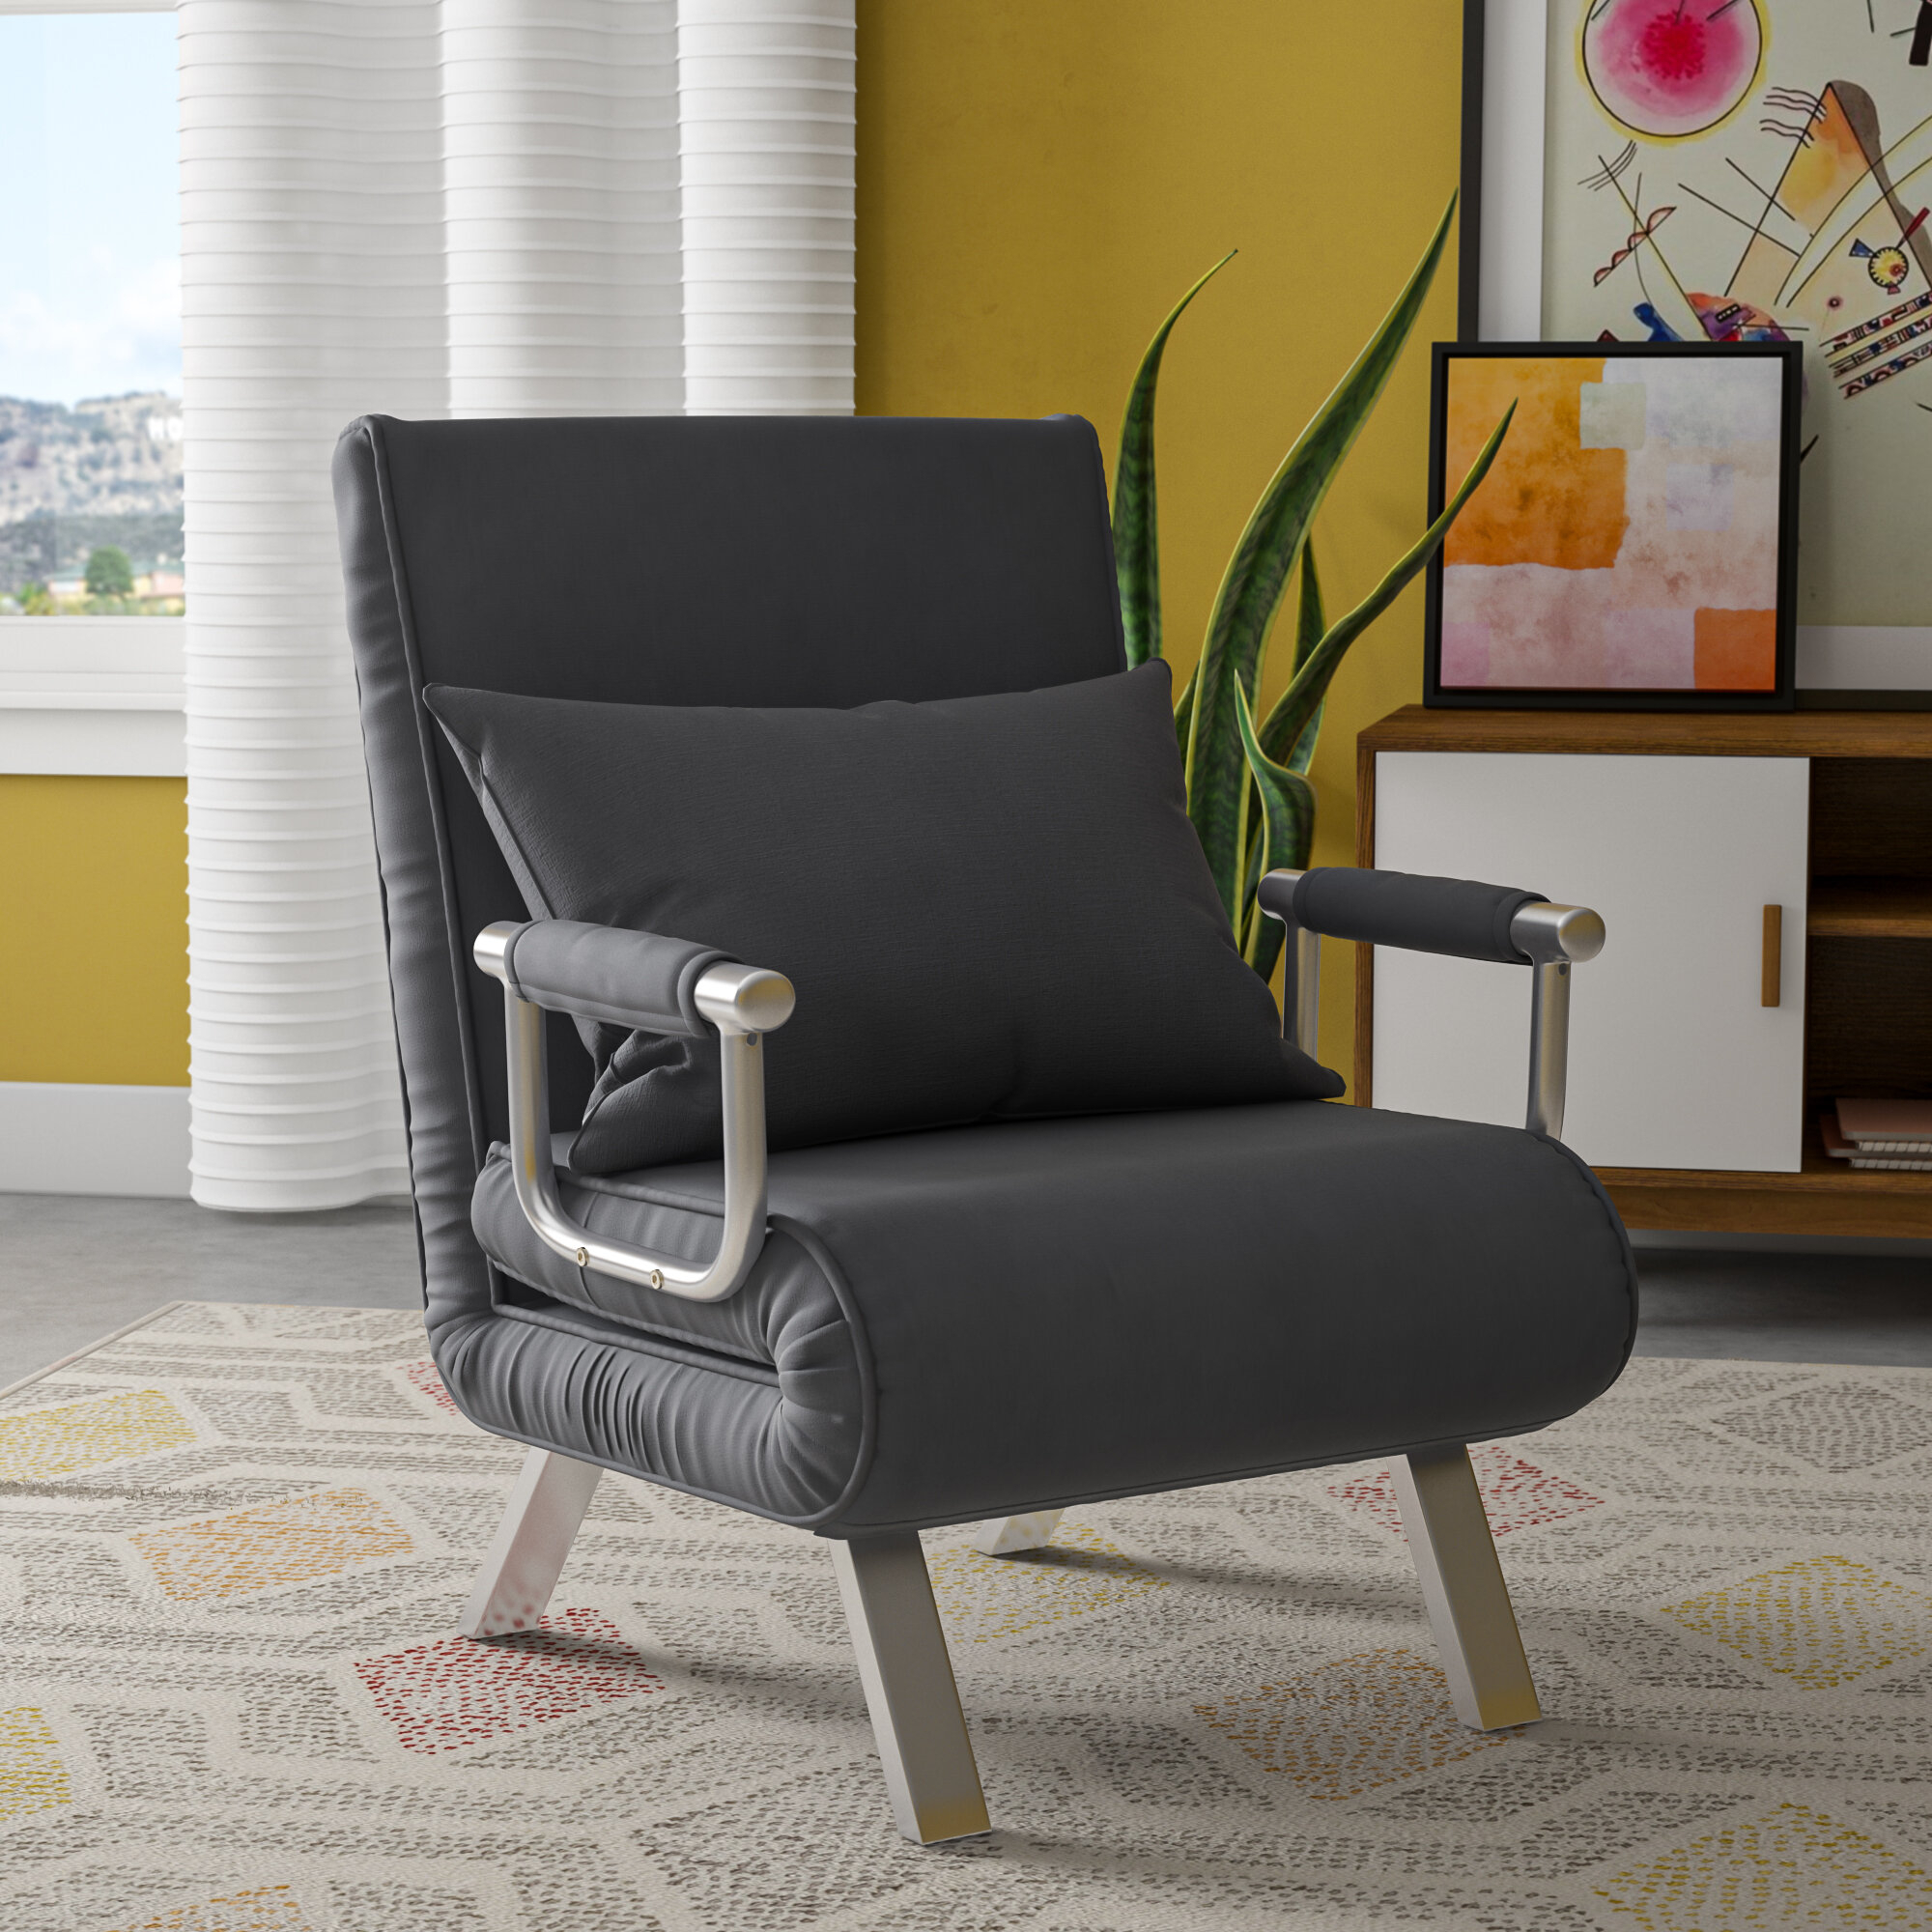 Convertible Chairs | Wayfair Within New London Convertible Chairs (View 7 of 15)